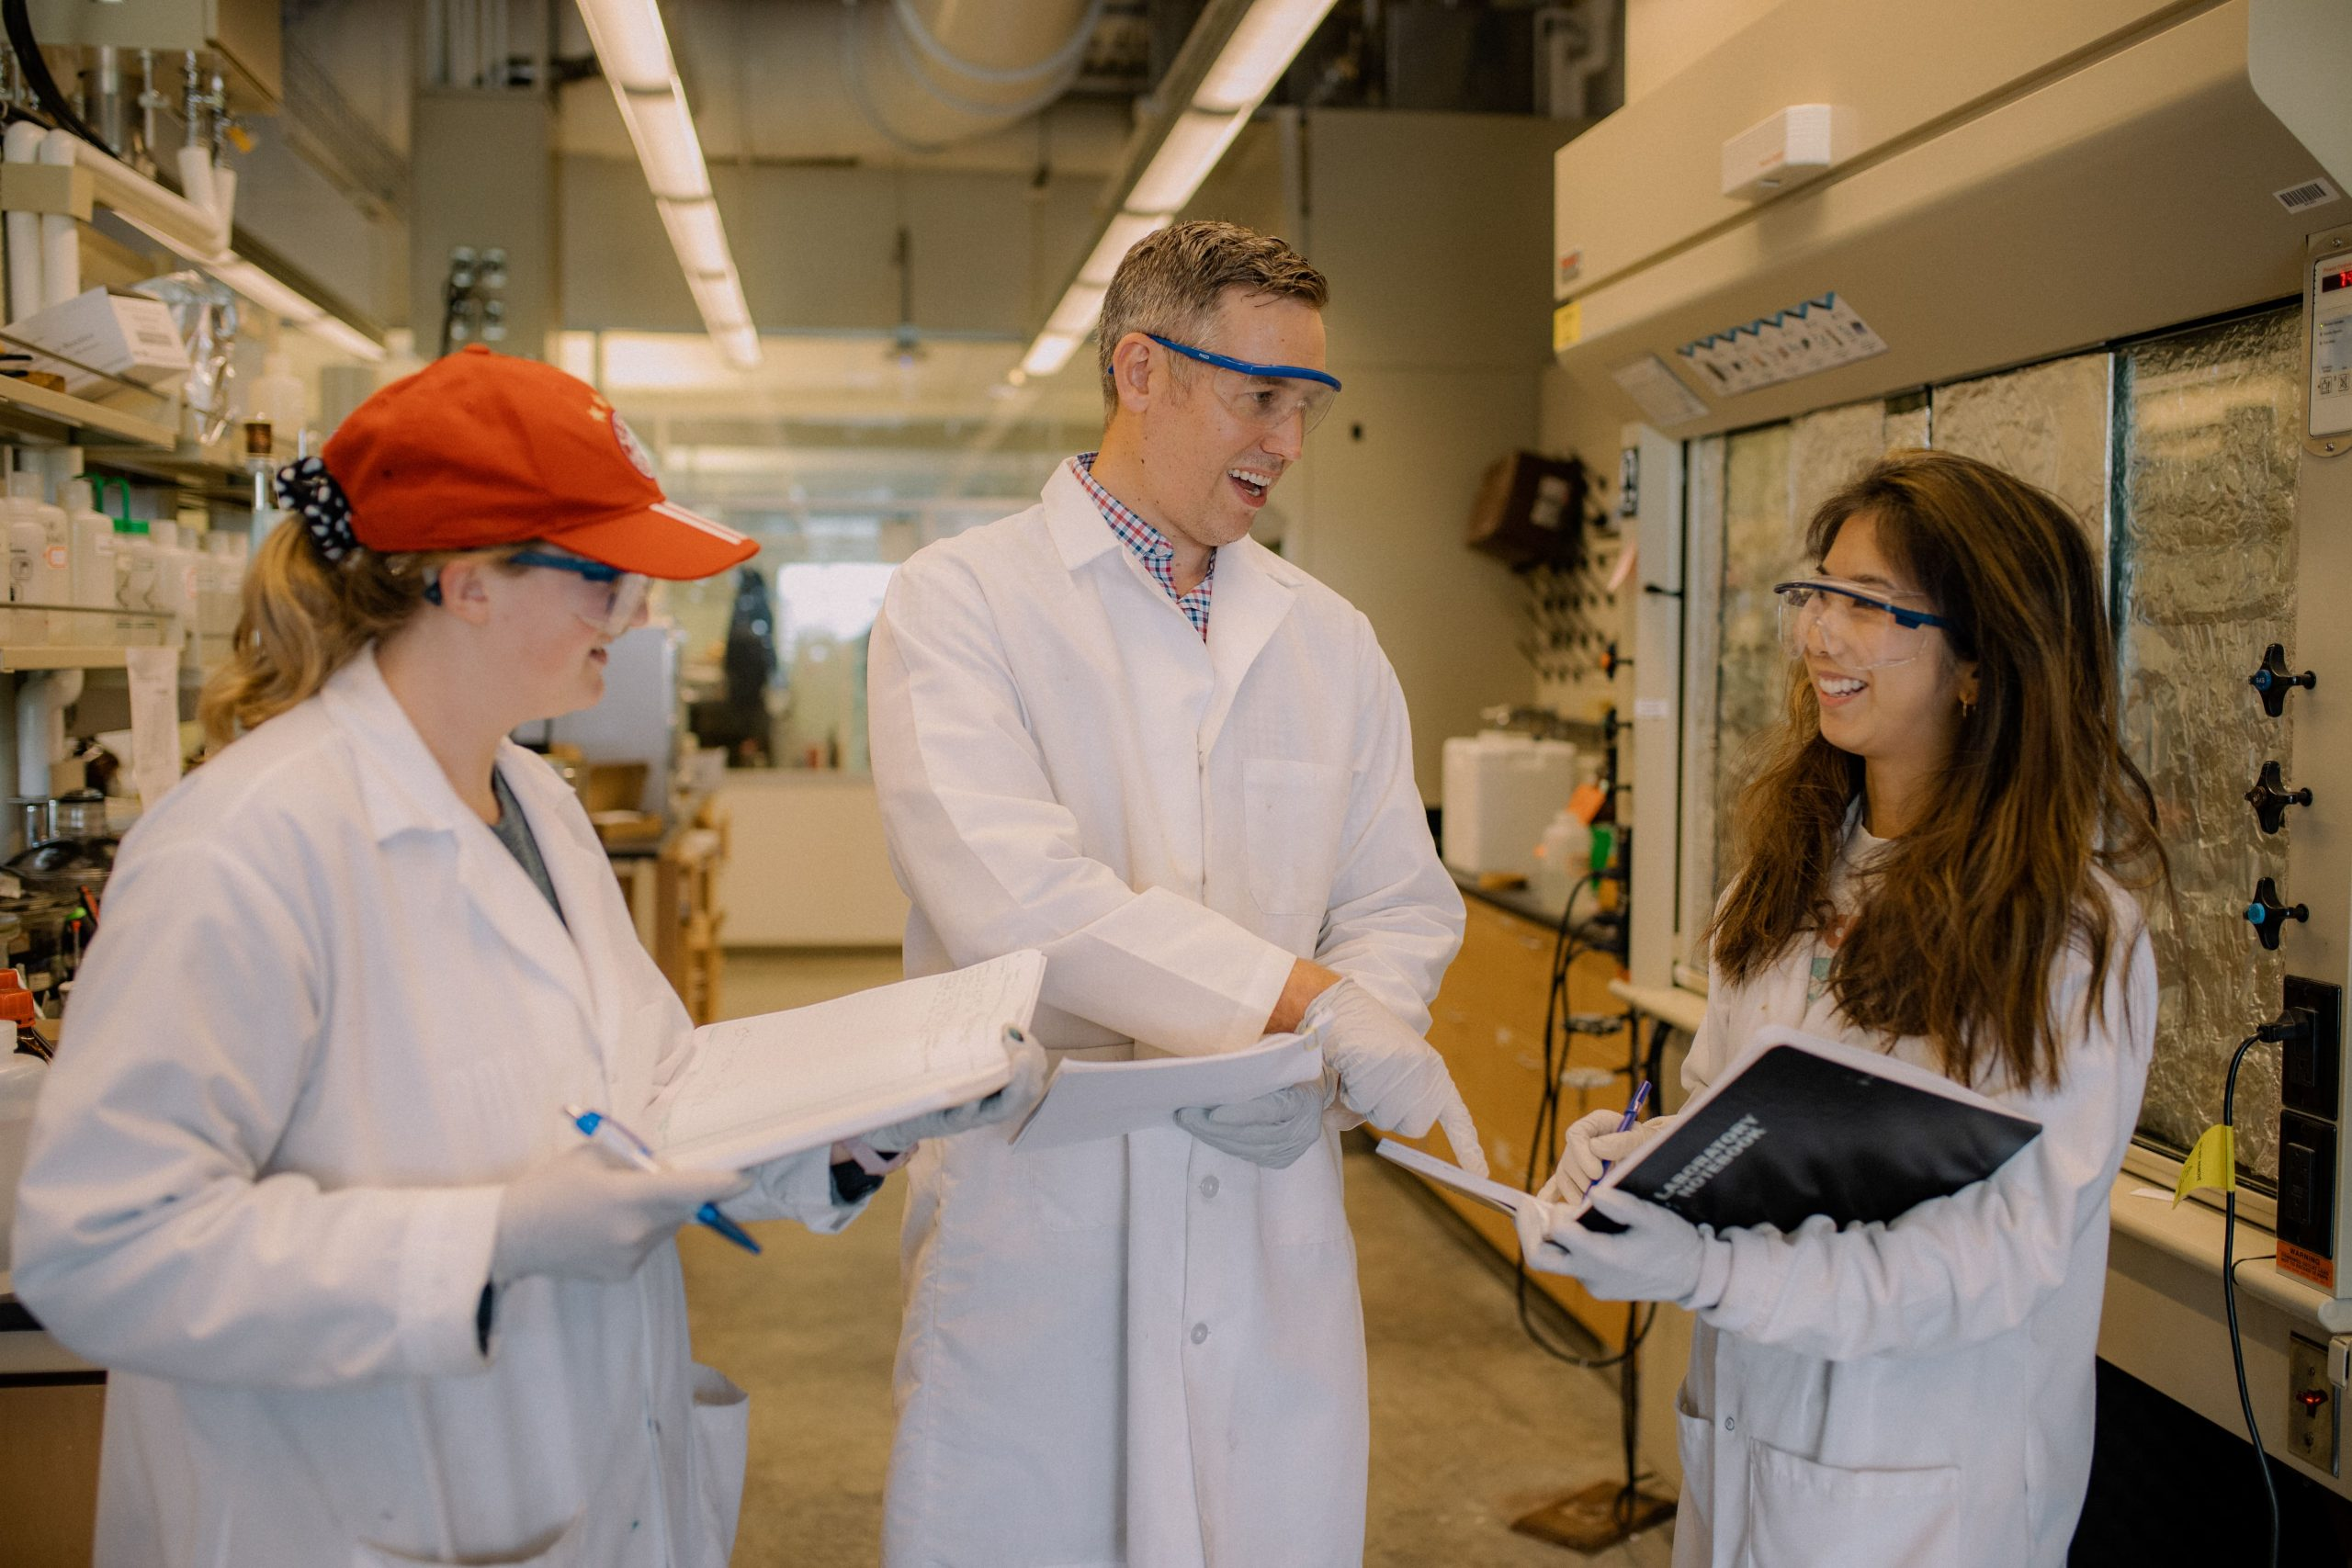 Arthur Winter, professor of chemistry, discusses research in his lab with two female graduate students